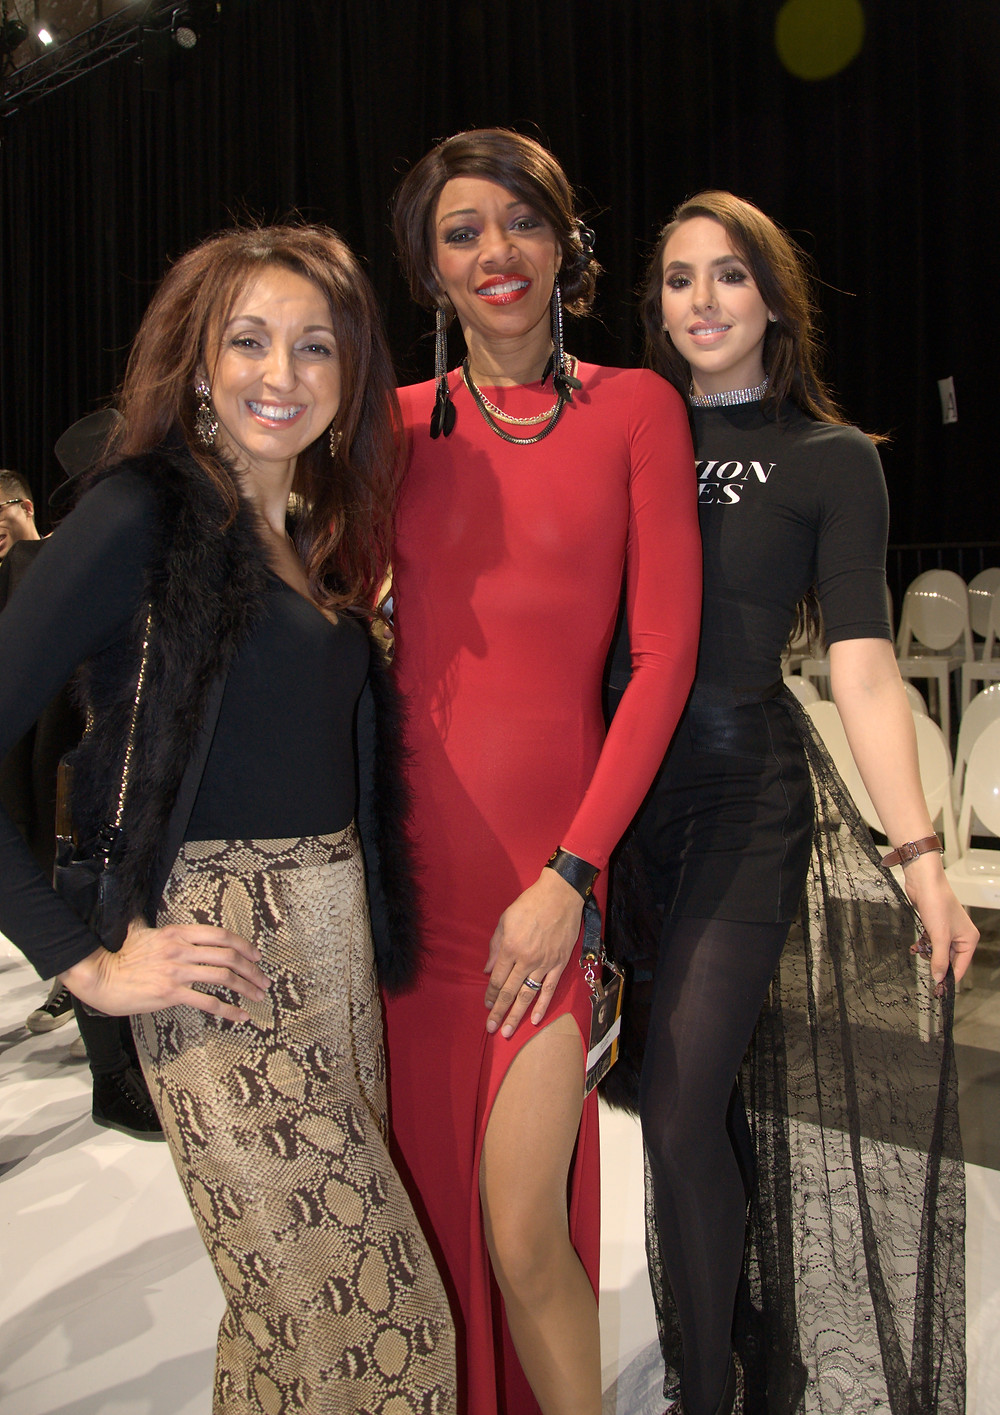 With Kara Granger (far right) and model Stephanie Riding-Cunningham (centre) wearing a Kara Louise Collection dress.